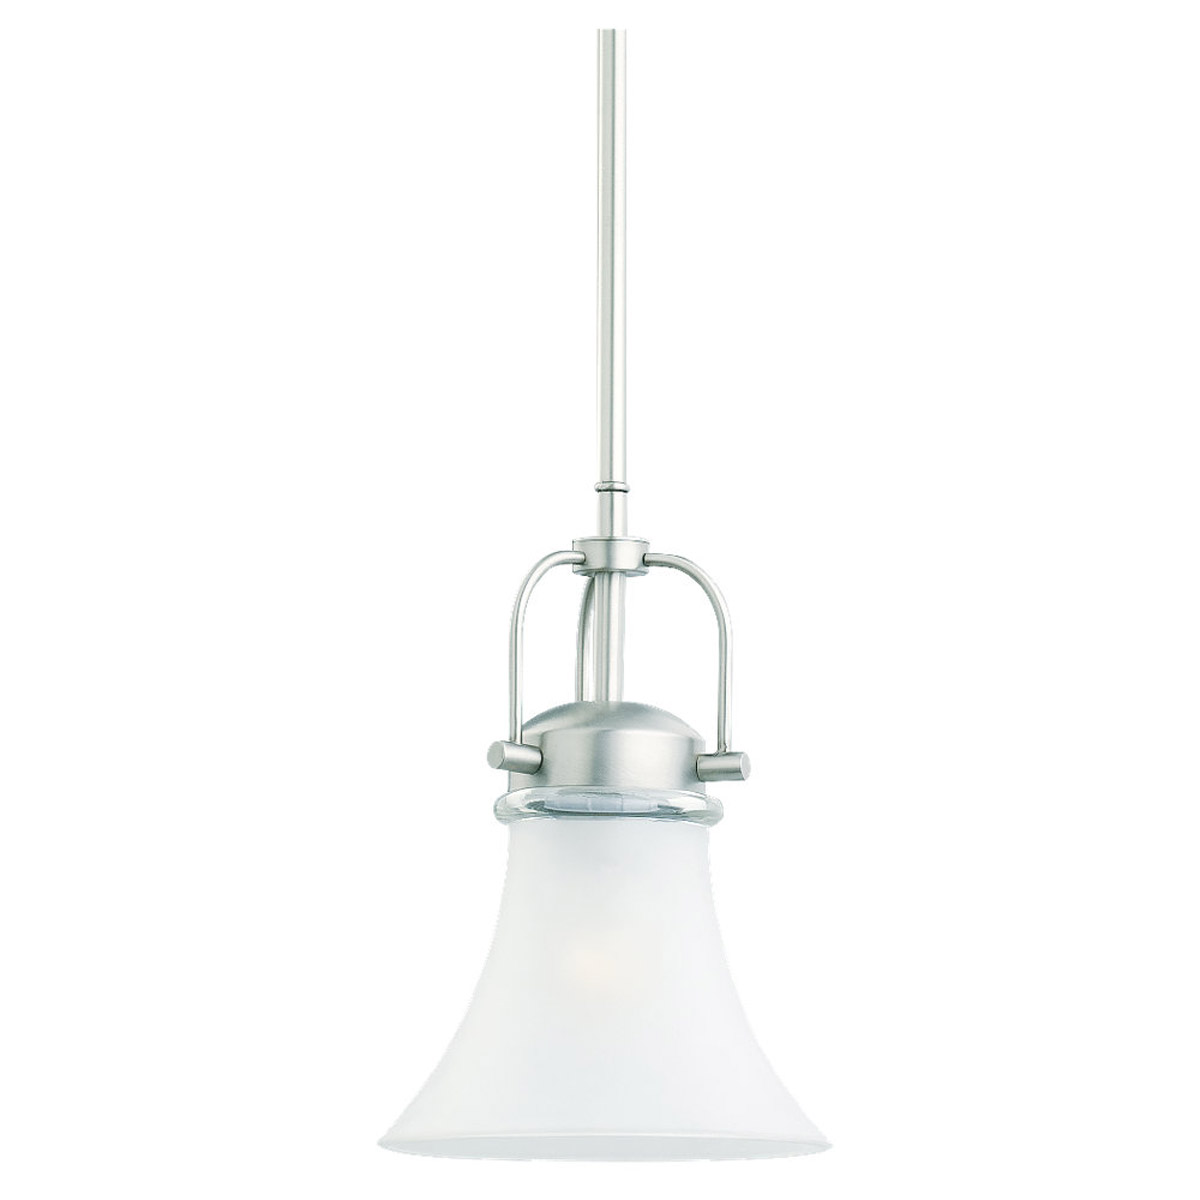 Sea Gull Lighting Newport 1 Light Mini Pendant in Antique Brushed Nickel 61283-965 photo